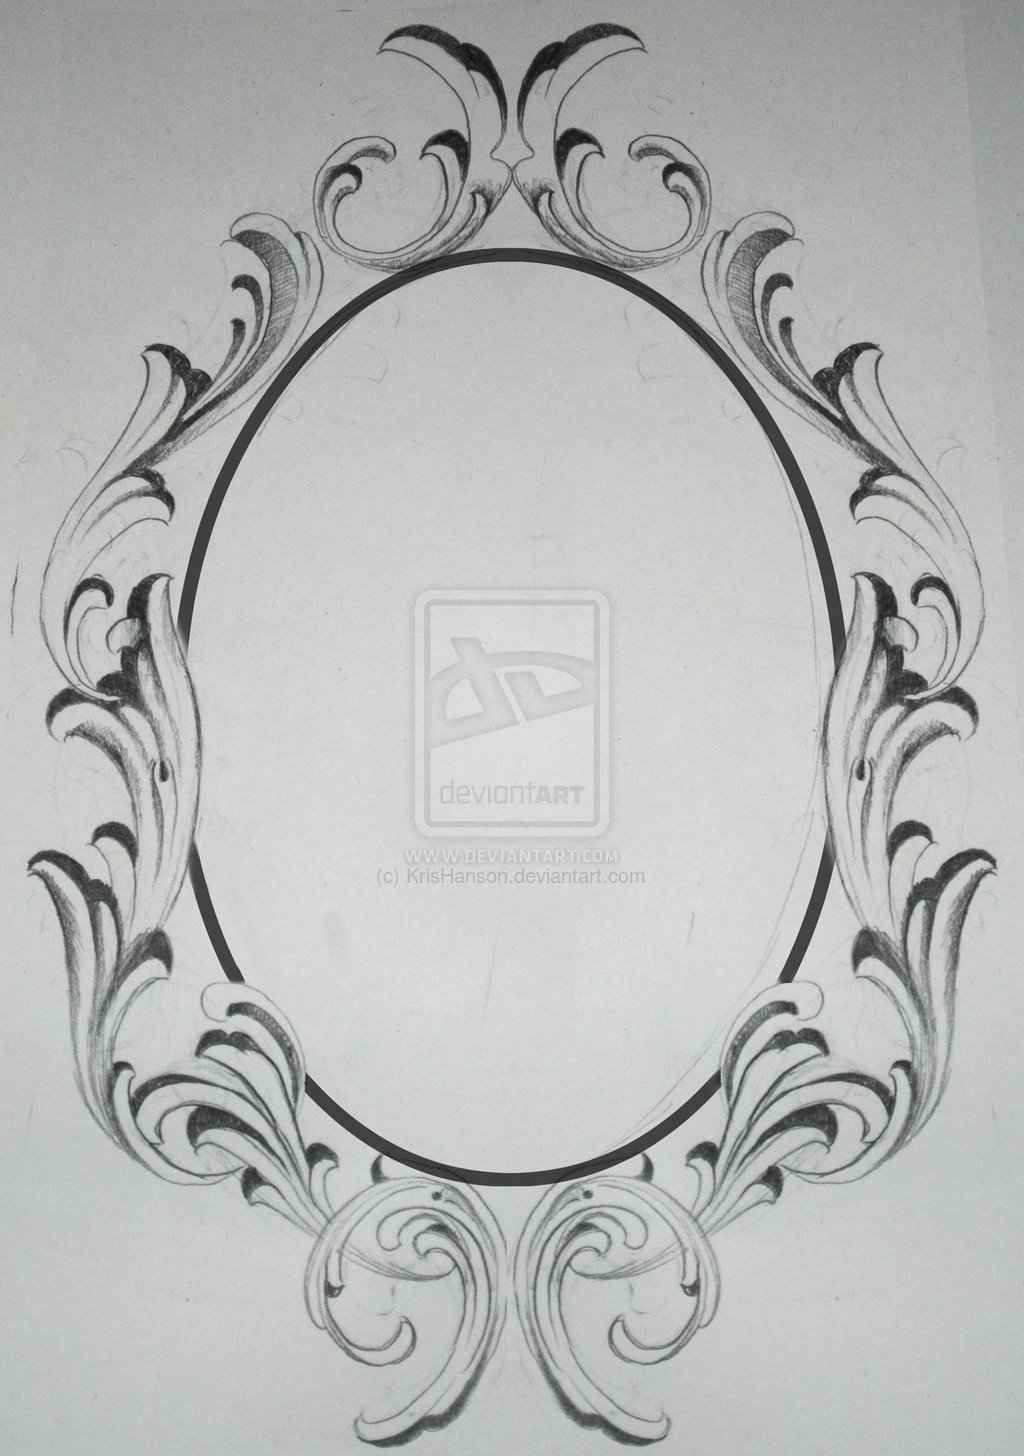 Gallery Images And Information: Oval Filigree Frame Tattoo | Inspire ...